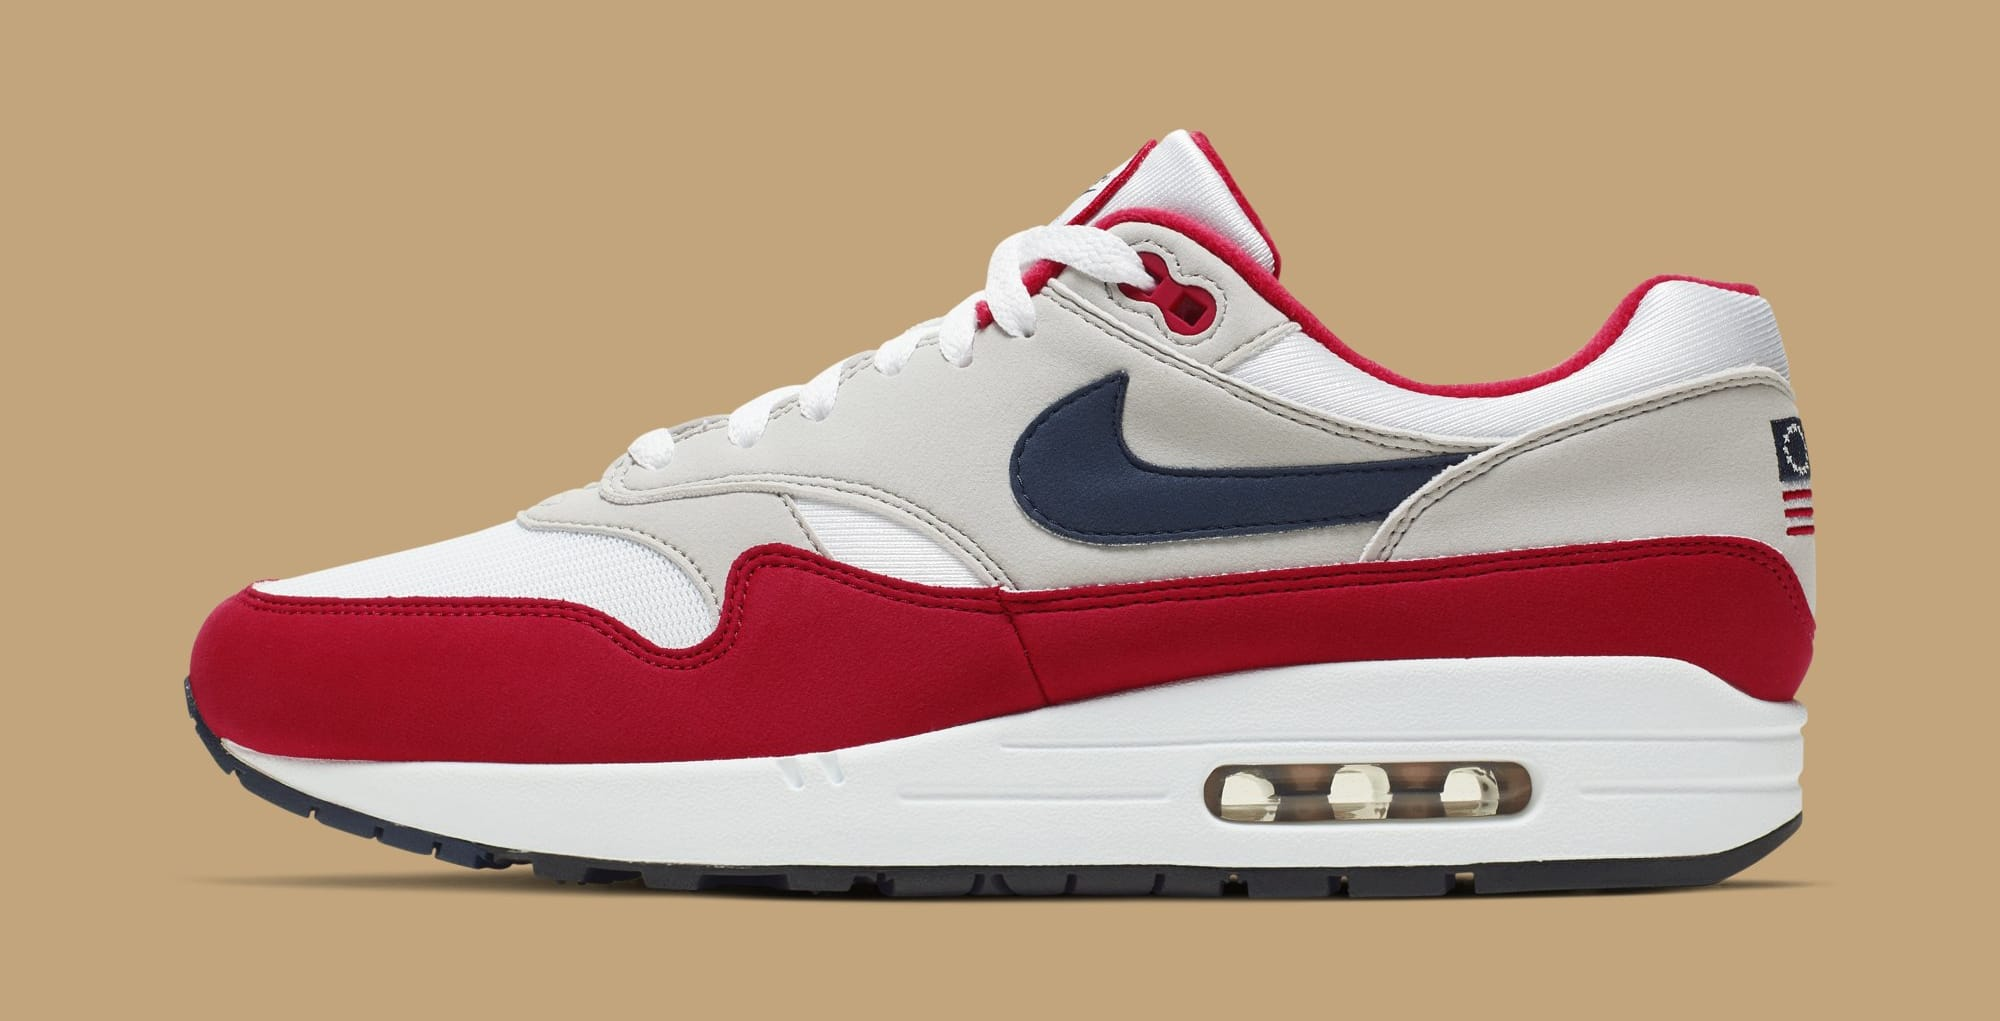 Nike Air Max 1 'Fourth of July' CJ4283-100 (Lateral)